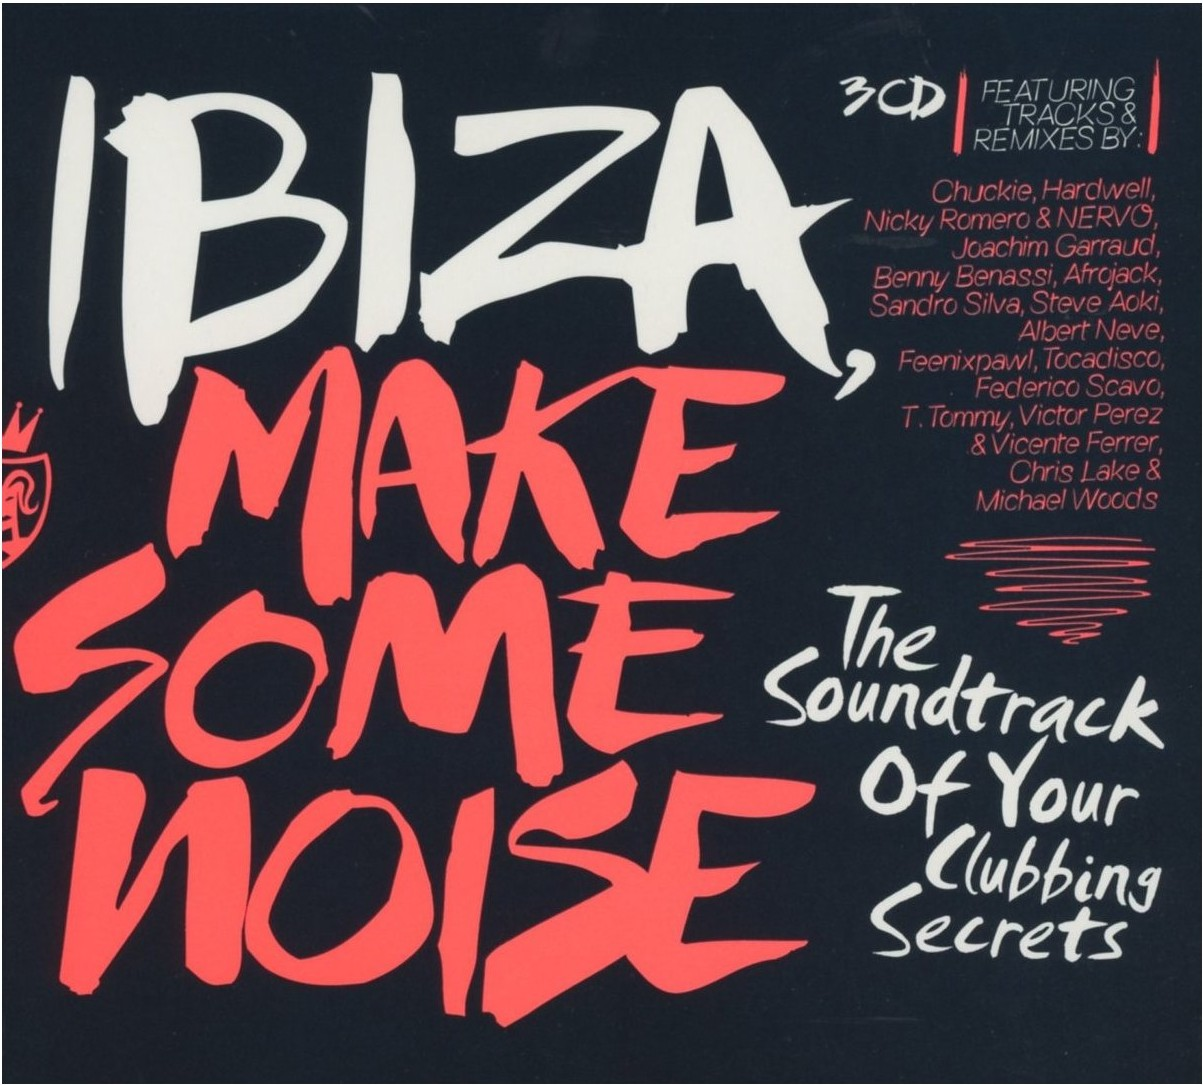 CD - Ibiza Make Some Noise – 2013